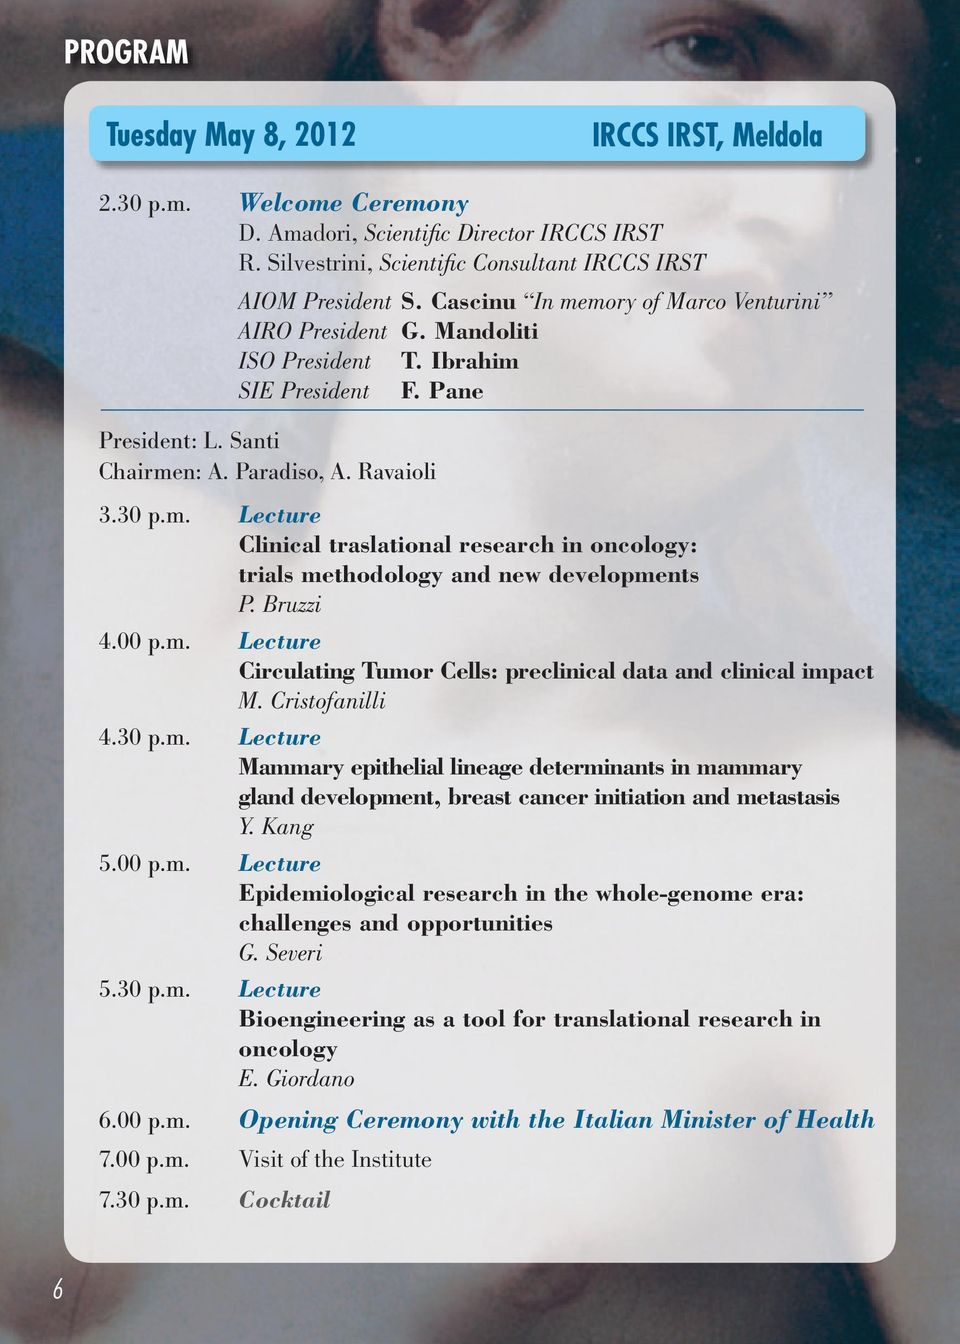 Bruzzi 4.00 p.m. Lecture Circulating Tumor Cells: preclinical data and clinical impact M. Cristofanilli 4.30 p.m. Lecture Mammary epithelial lineage determinants in mammary gland development, breast cancer initiation and metastasis Y.